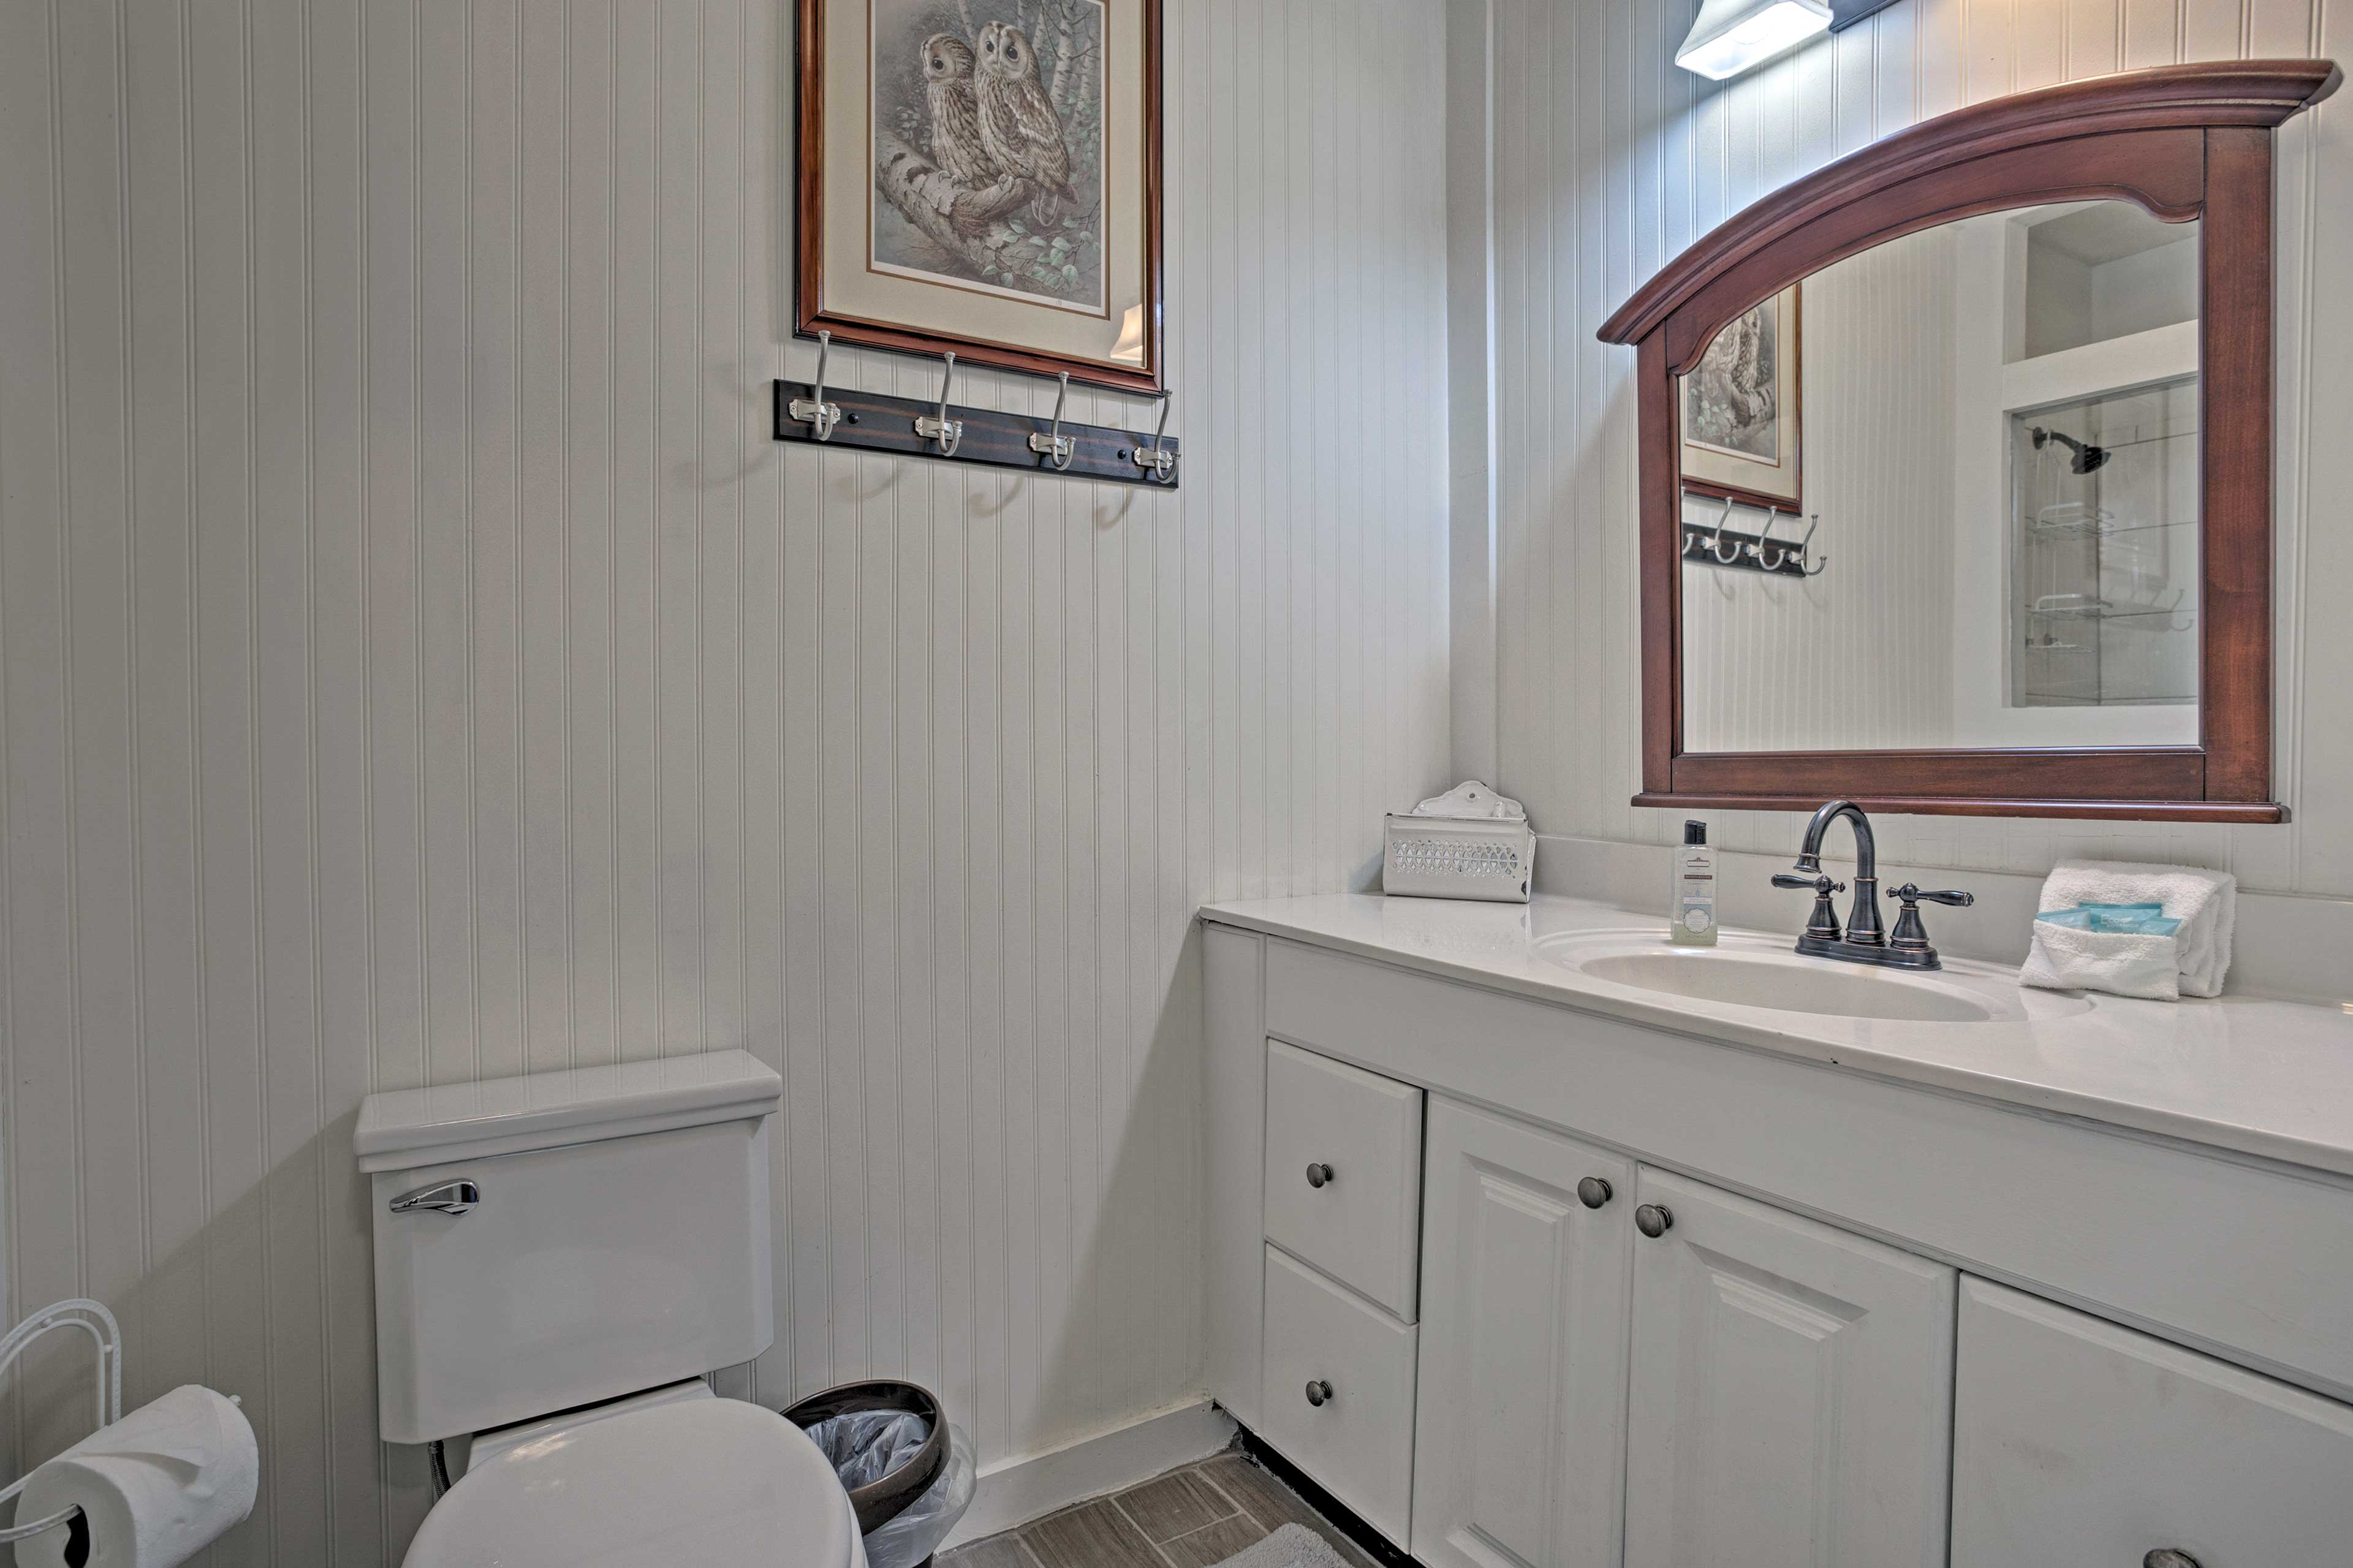 You'll love getting ready in this pristine bathroom.